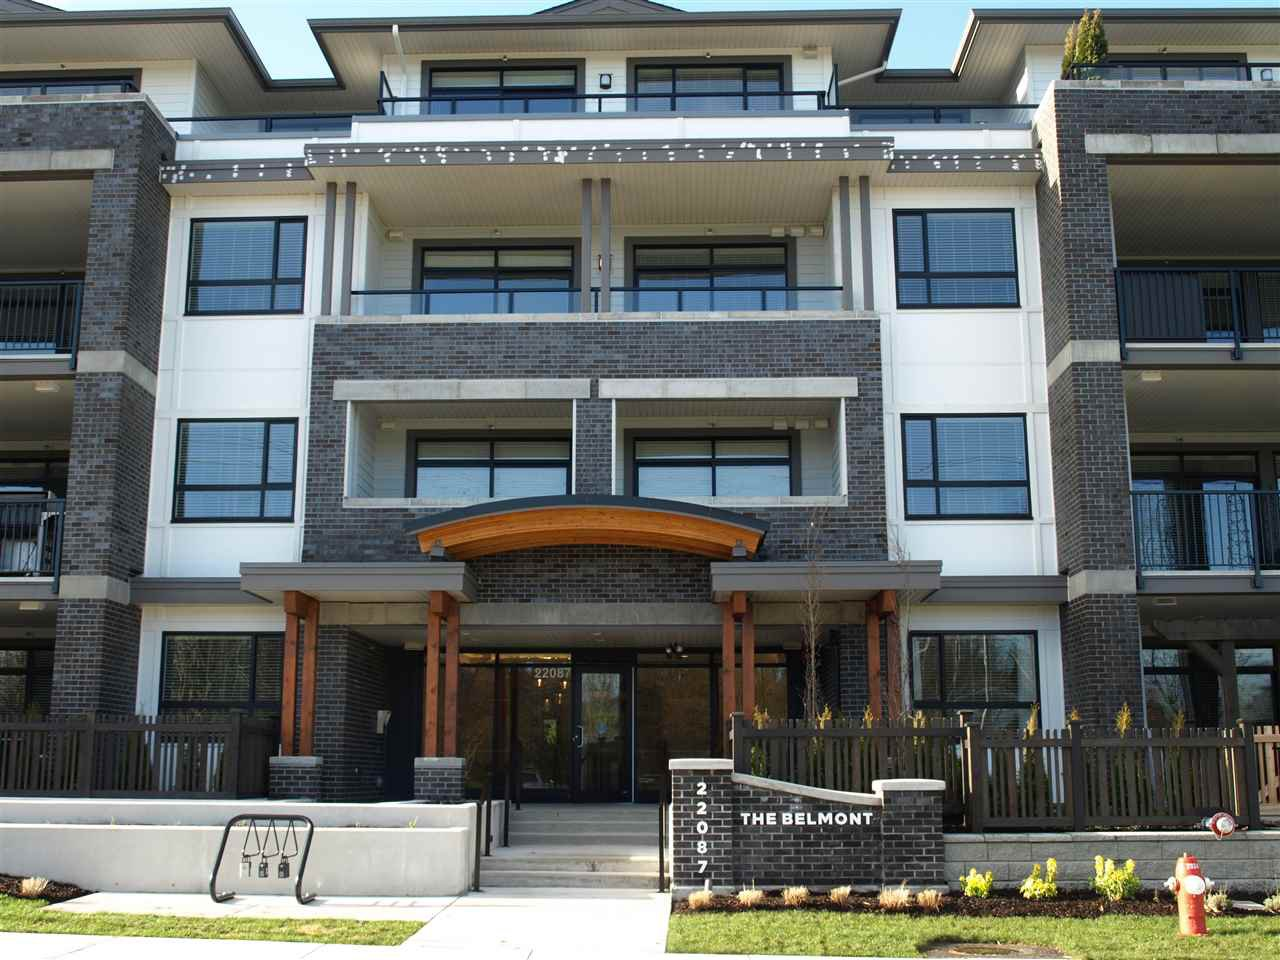 "Main Photo: 203 22087 49 Avenue in Langley: Murrayville Condo for sale in ""The Belmont in Murrayville"" : MLS®# R2352425"